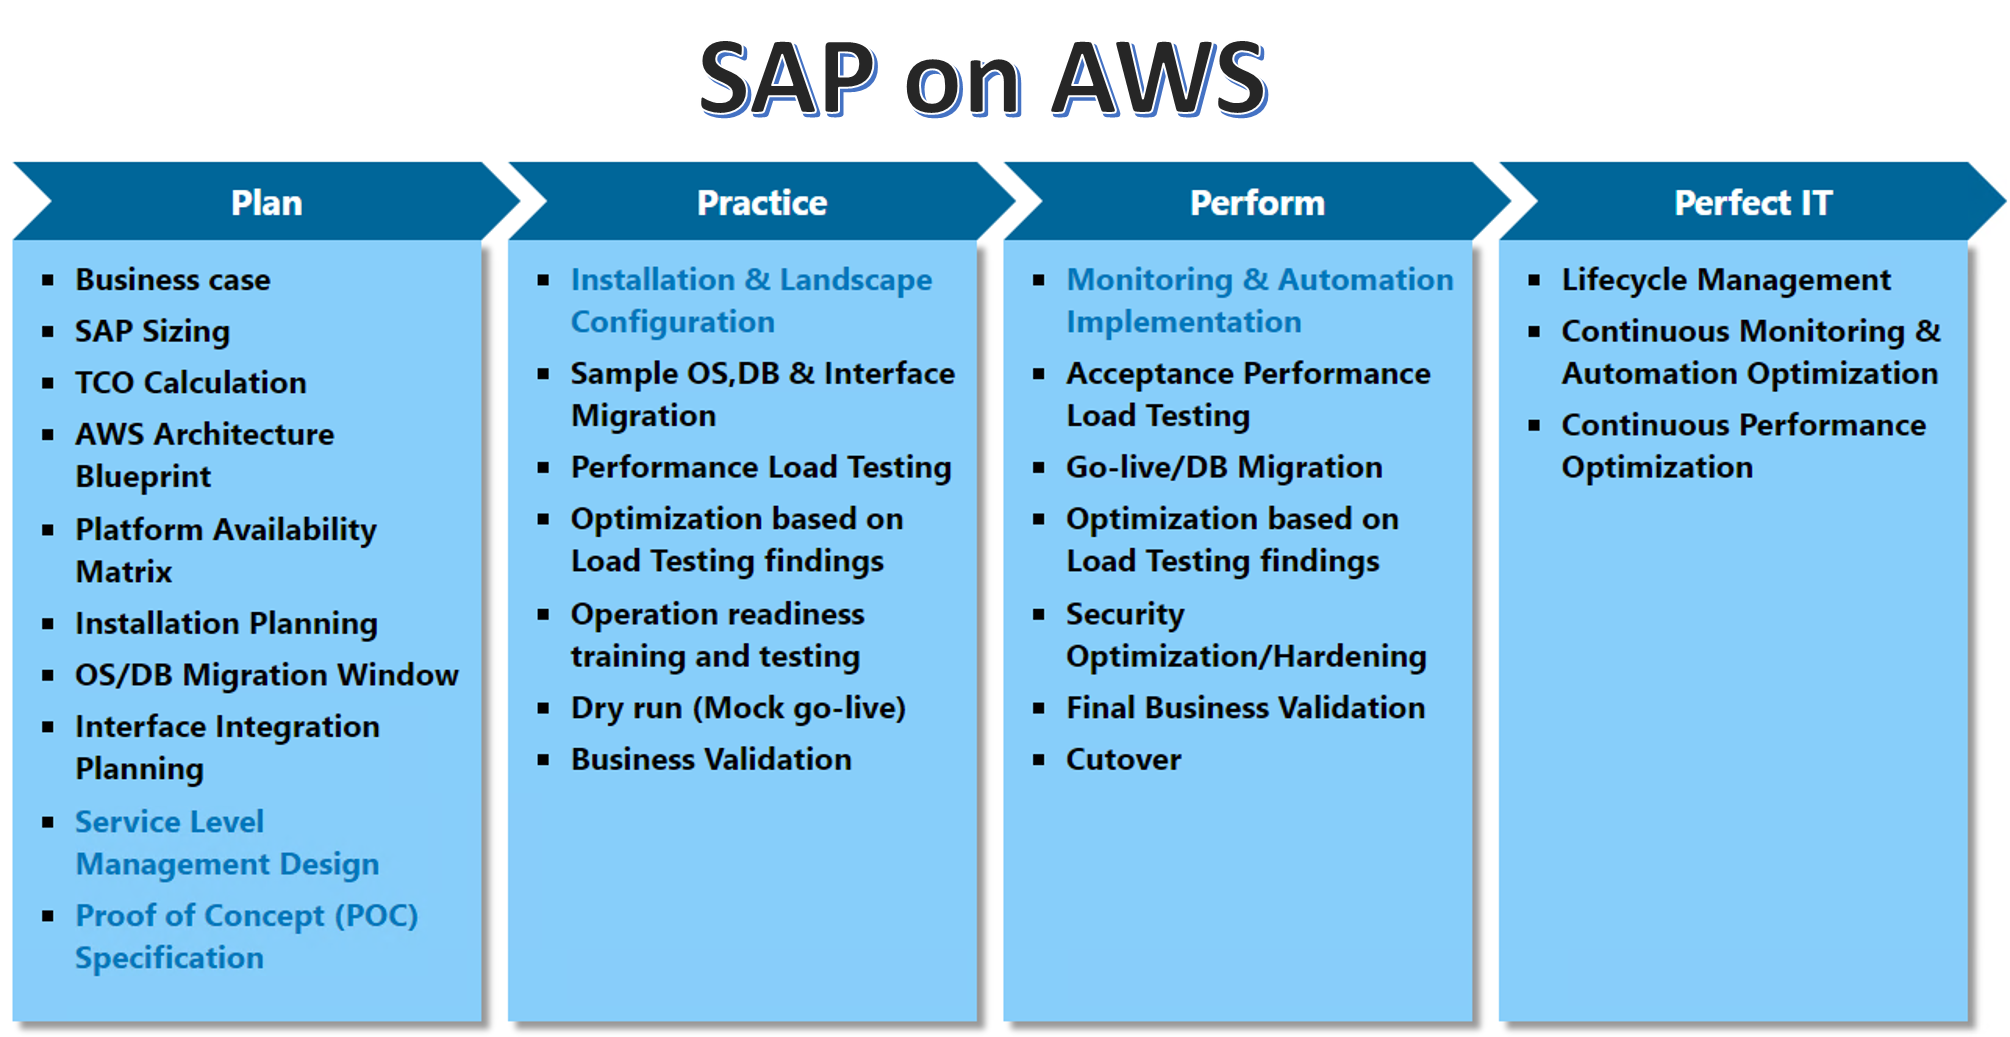 The easiest migration to sap on aws sap on aws roadmap services by ozsoft it conductor malvernweather Image collections